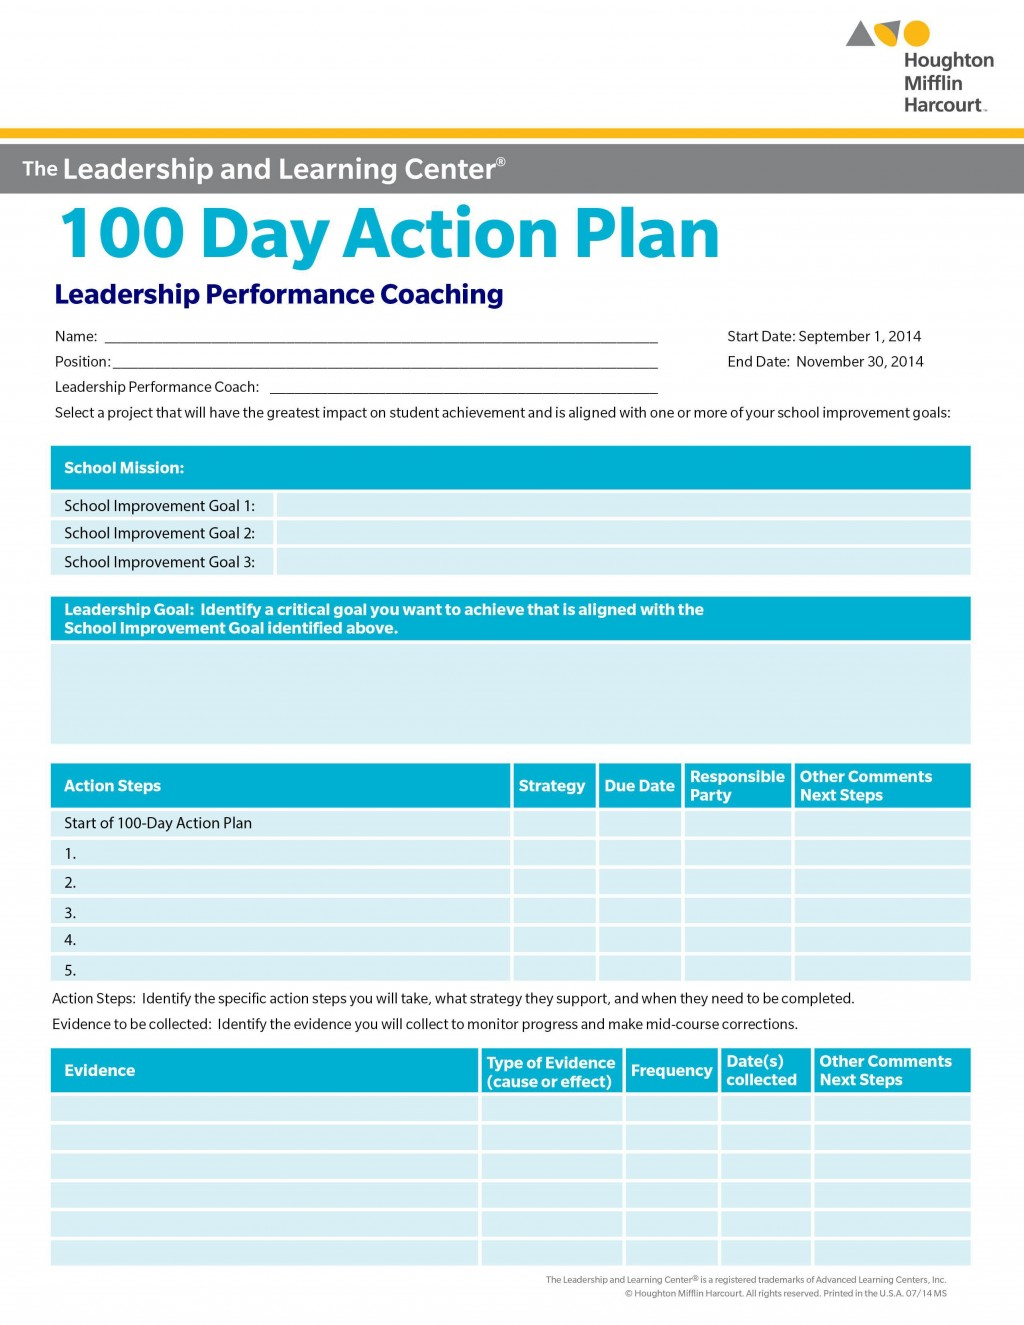 002 Stunning School Improvement Planning Template Example  Templates Plan Sample Deped 2016 South AfricaLarge